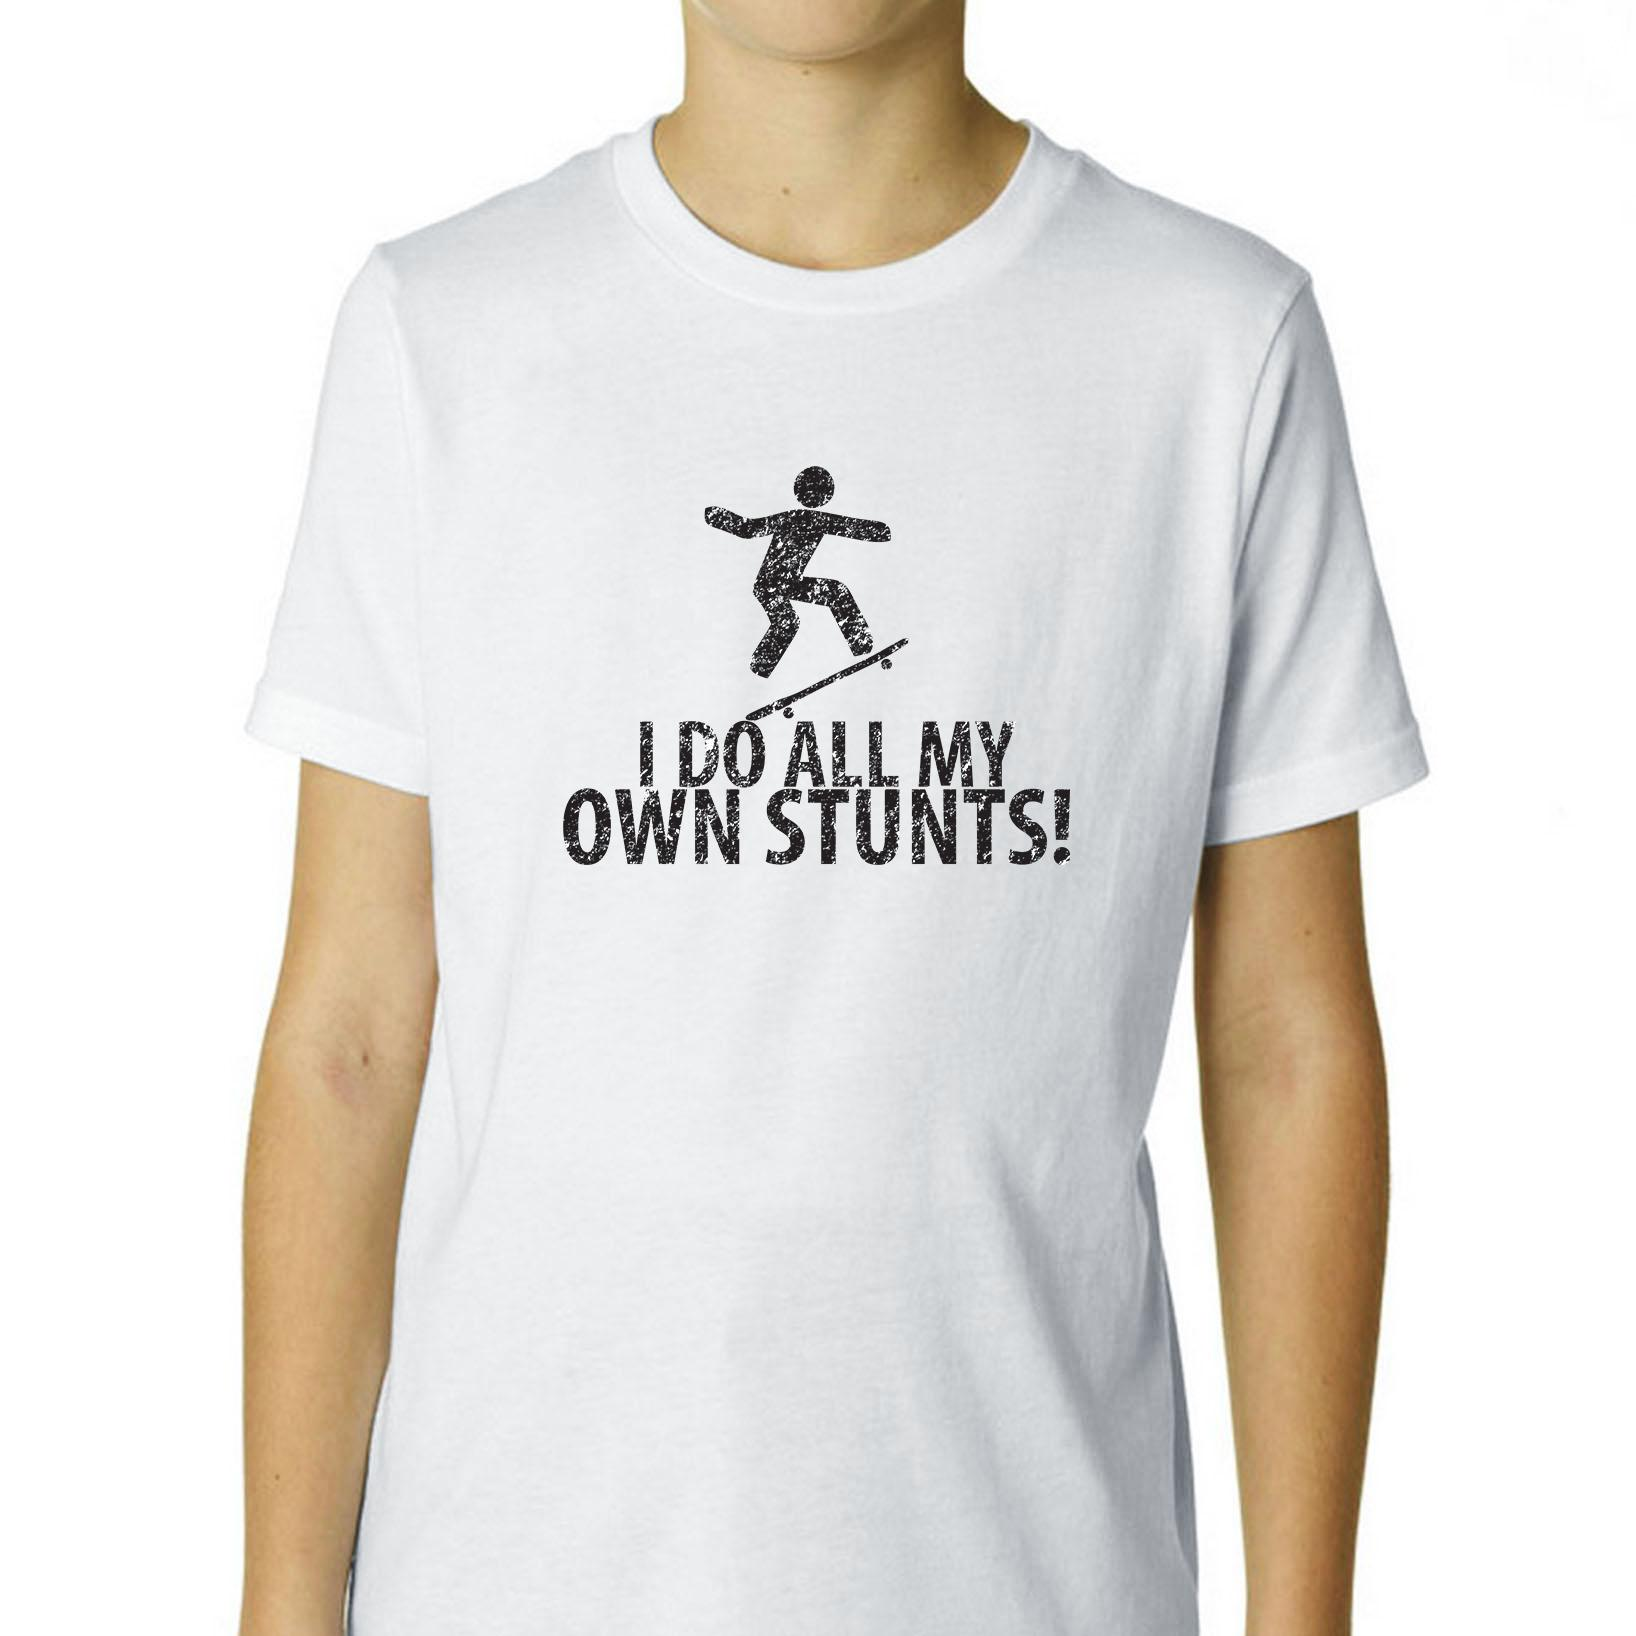 Skateboard I Do All My Own Skating Stunts Boy's Cotton Youth T-Shirt by Hollywood Thread